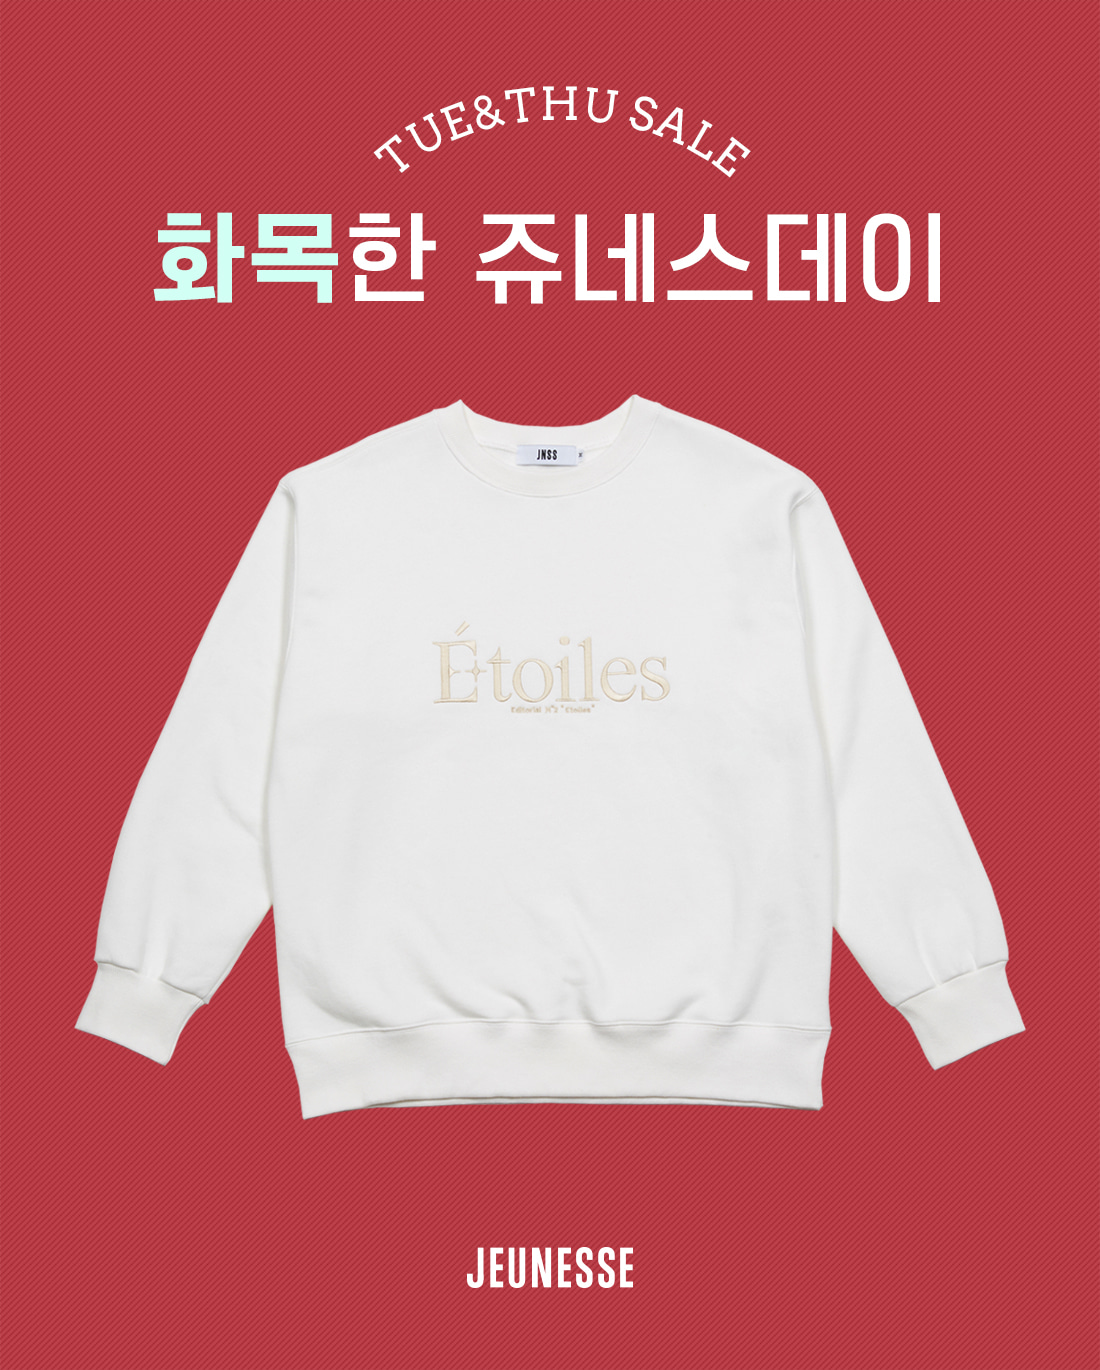 Etoiles Sweatshirt White (FW Version 기모)